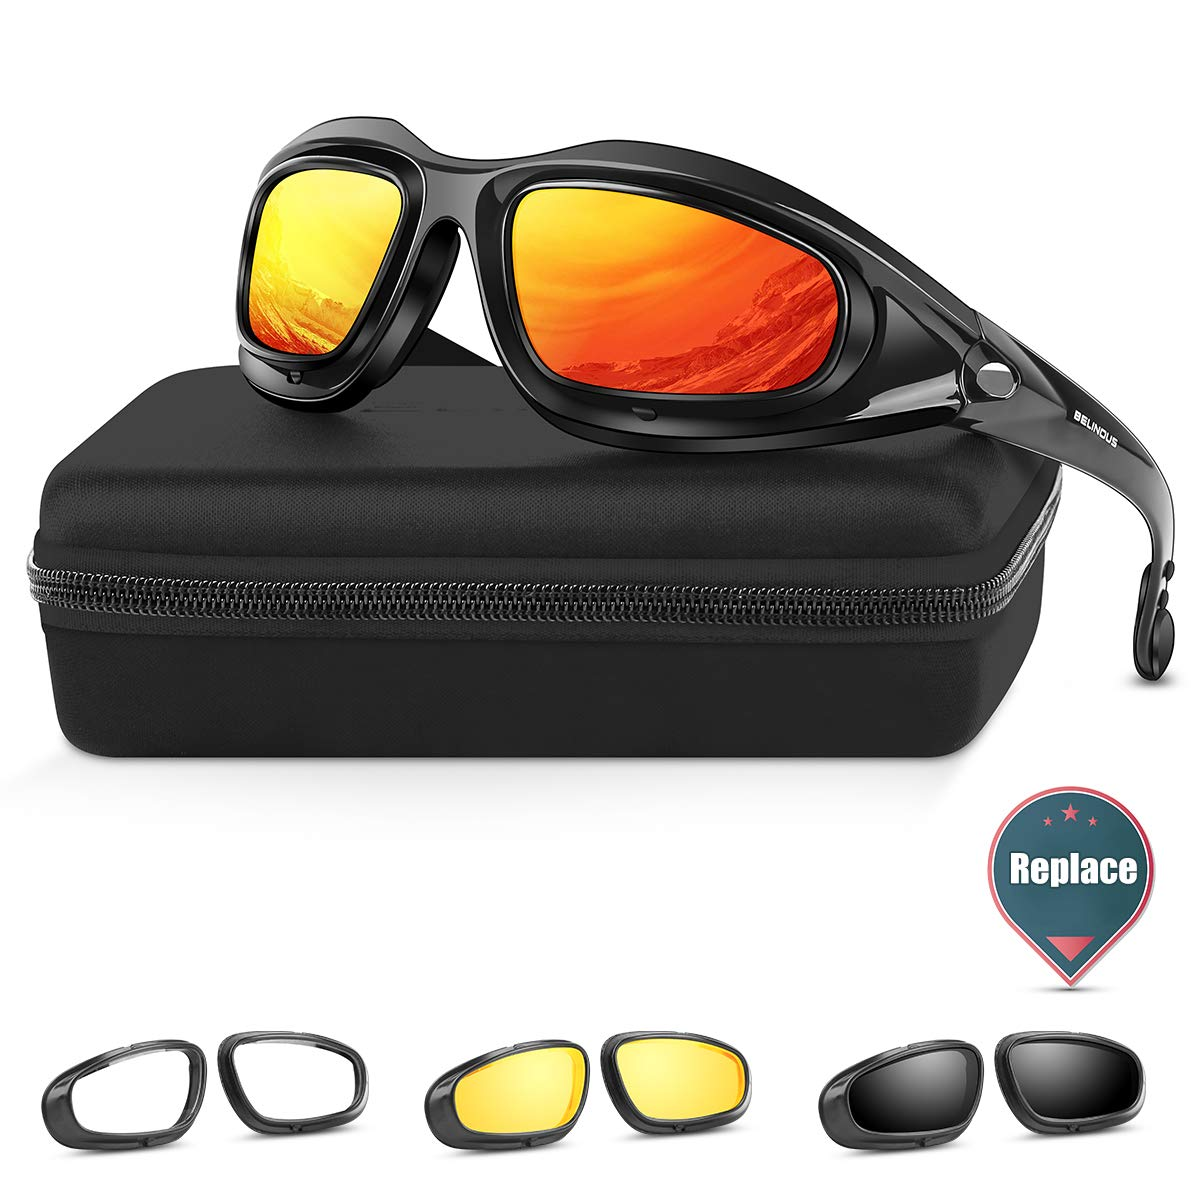 BELINOUS Polarized Motorcycle Riding Glasses, Tactical Glasses w/Black Frame 4 Lens Kit Copper Smoke Clear Yellow for Sports Outdoor Activities Cycling Hiking Climbing Skiing Hunting Fishing Driving by BELINOUS